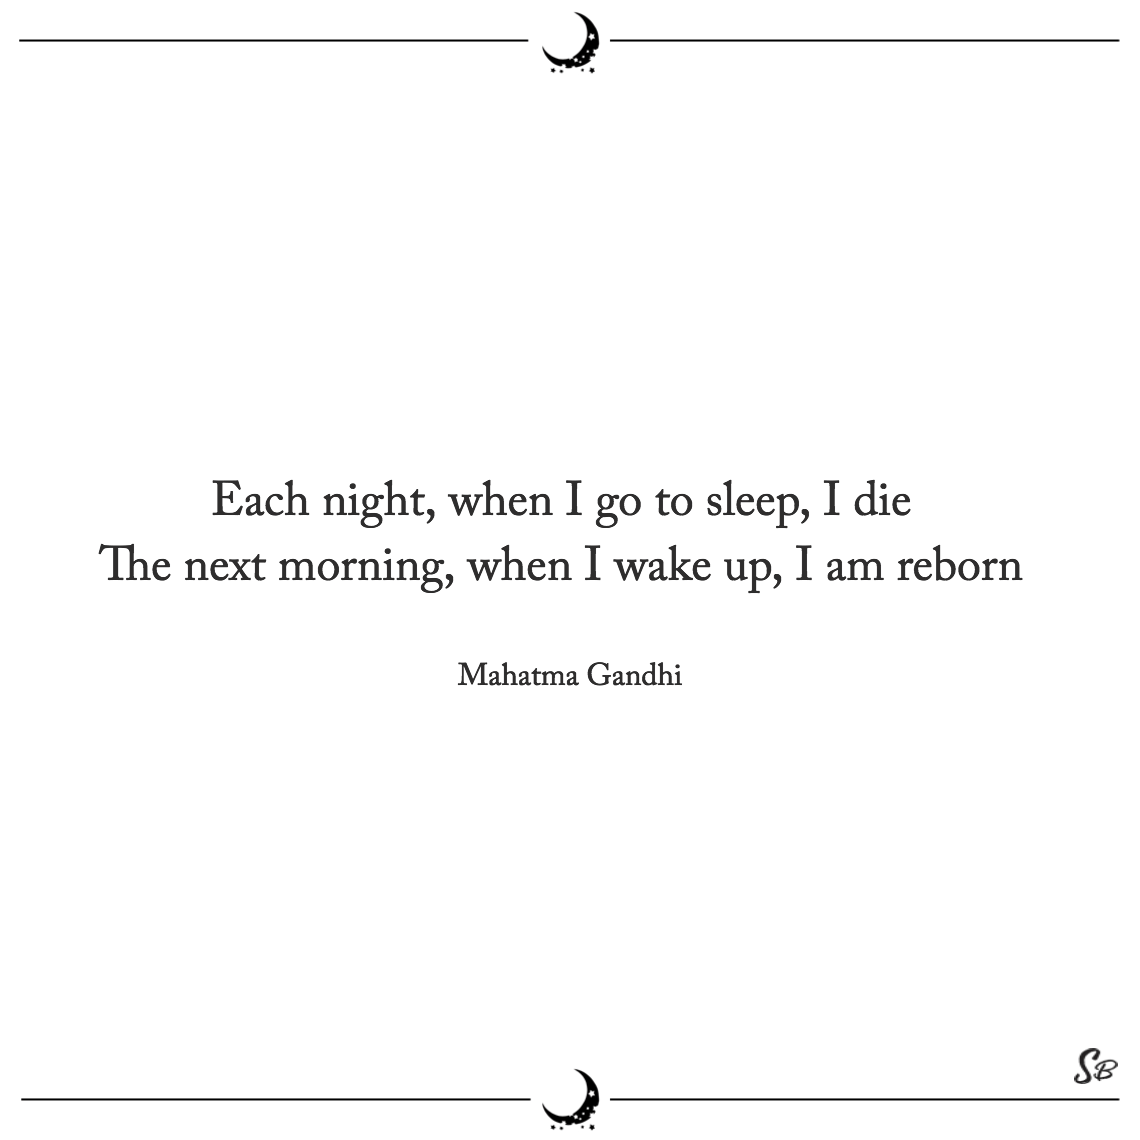 Each night, when i go to sleep, i die the next morning, when i wake up, i am reborn mahatma gandhi